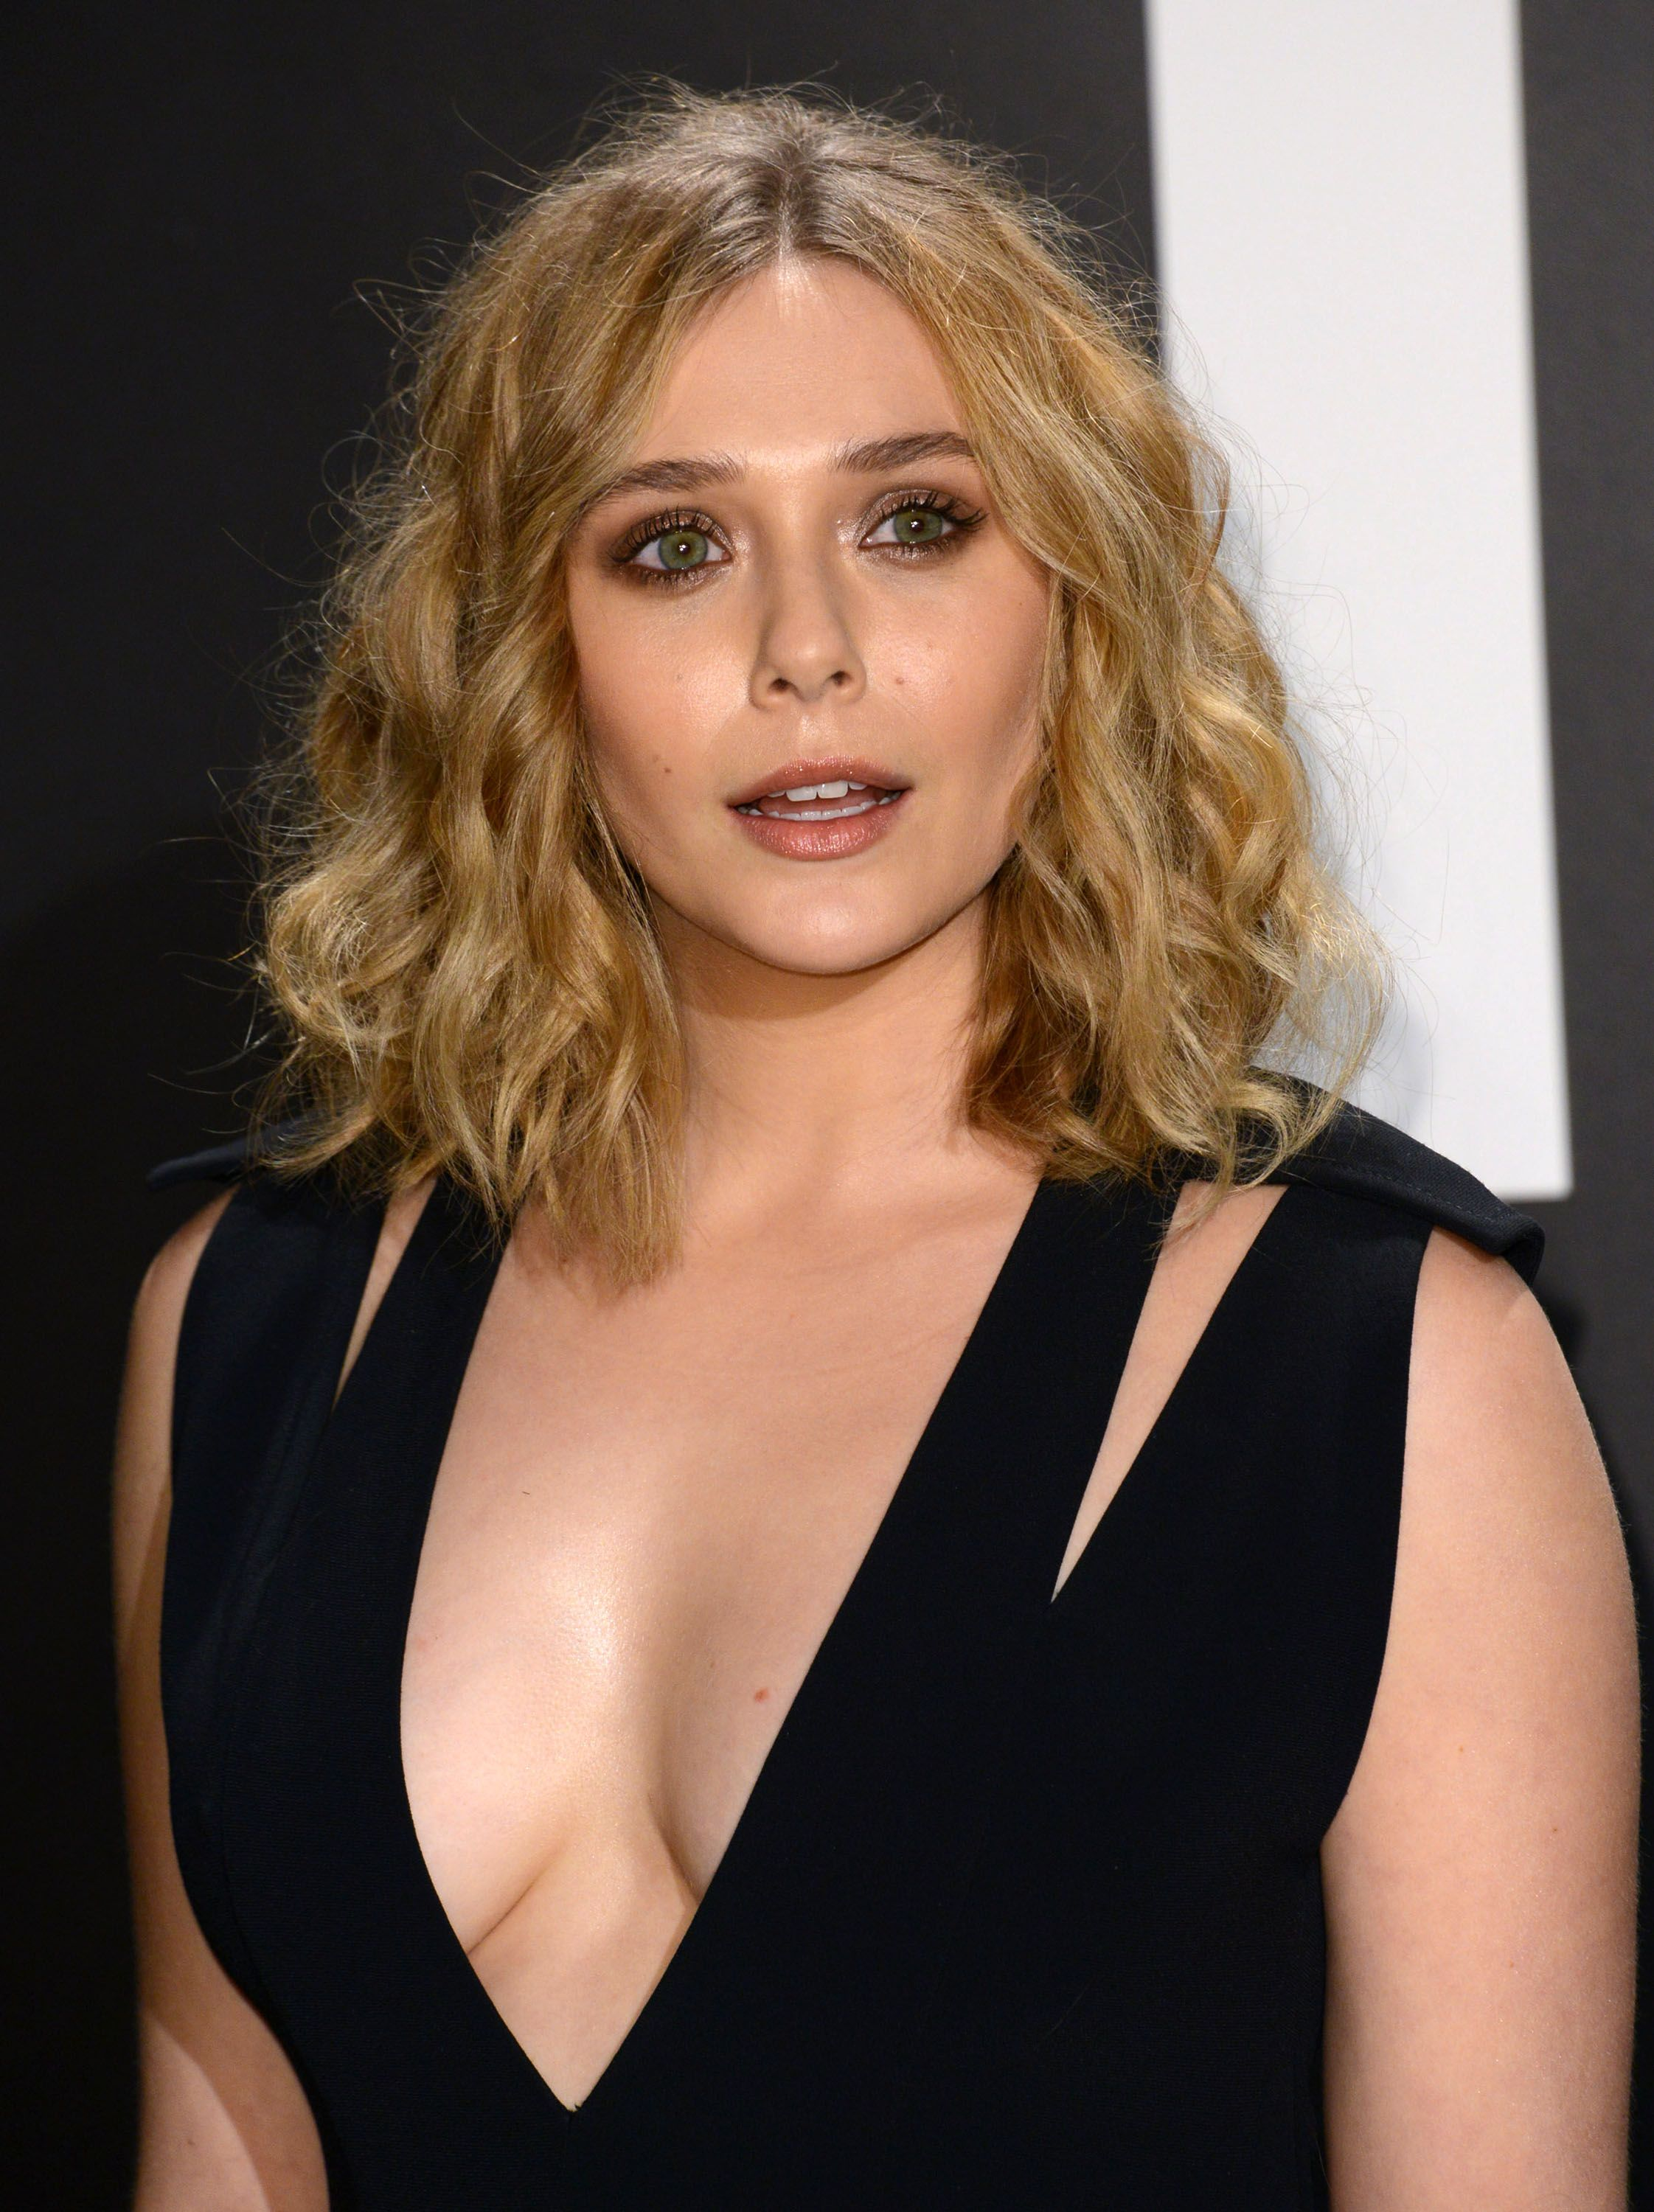 elizabeth olsen photoshootelizabeth olsen gif, elizabeth olsen tumblr, elizabeth olsen photoshoot, elizabeth olsen 2017, elizabeth olsen boyfriend, elizabeth olsen gallery, elizabeth olsen site, elizabeth olsen фильмы, elizabeth olsen boyd holbrook, elizabeth olsen twitter, elizabeth olsen style, elizabeth olsen фото, elizabeth olsen facebook, elizabeth olsen and chris evans, elizabeth olsen gif tumblr, elizabeth olsen street style, elizabeth olsen instagram, elizabeth olsen icons, elizabeth olsen films, elizabeth olsen википедия